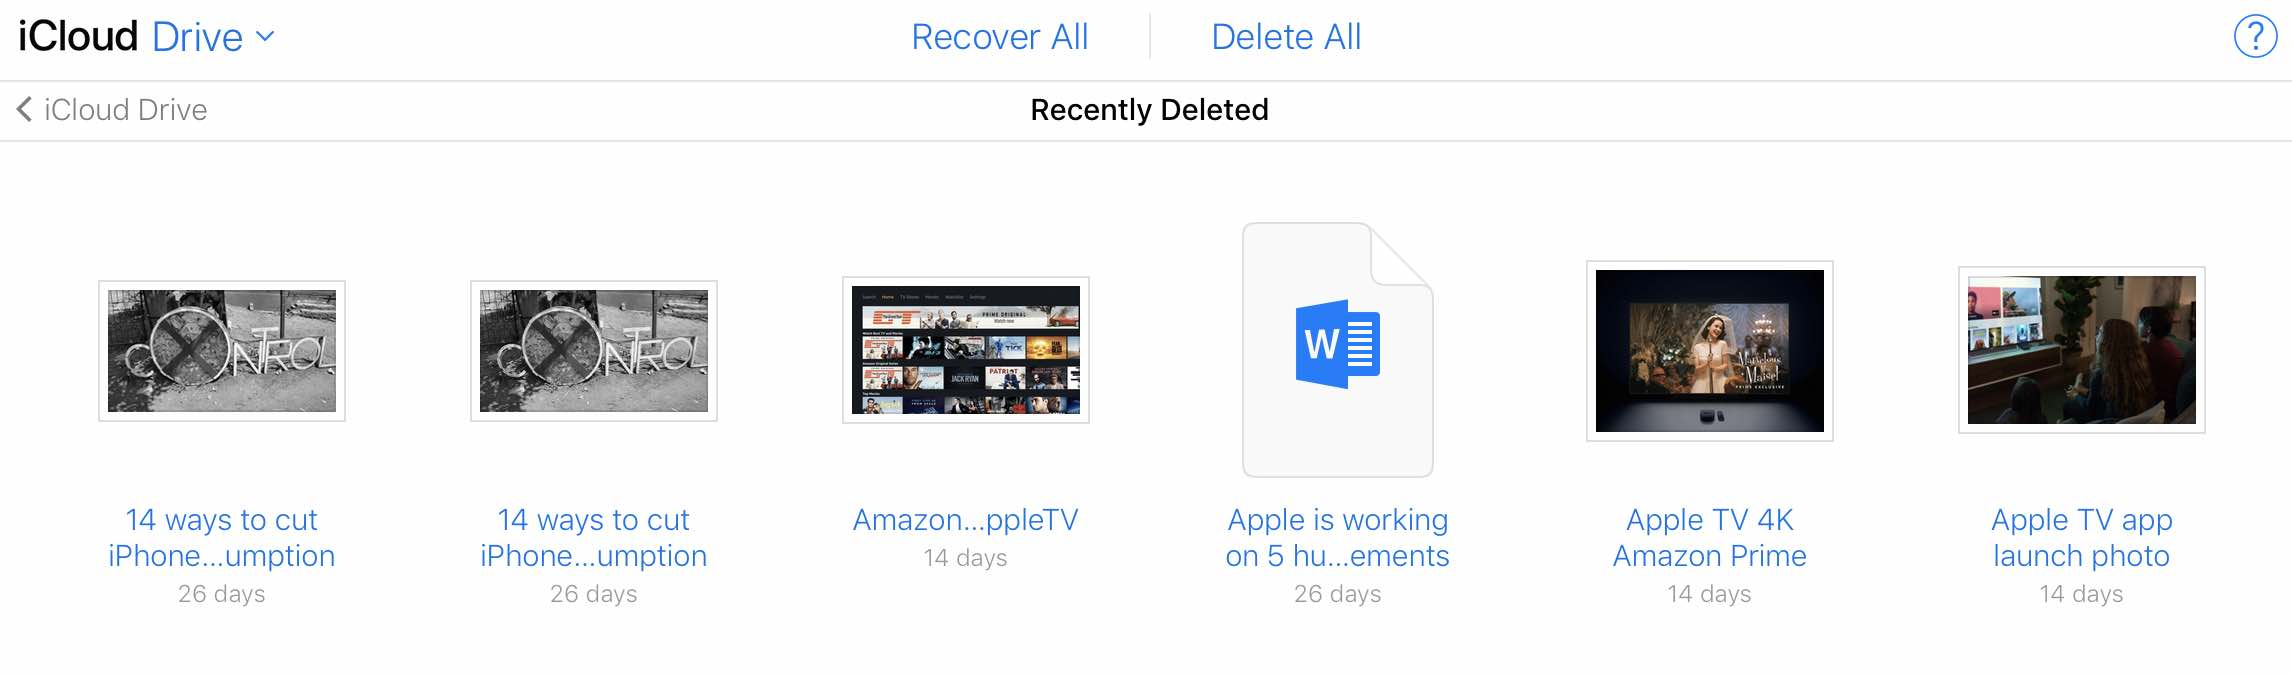 iCloud Drive Recovery